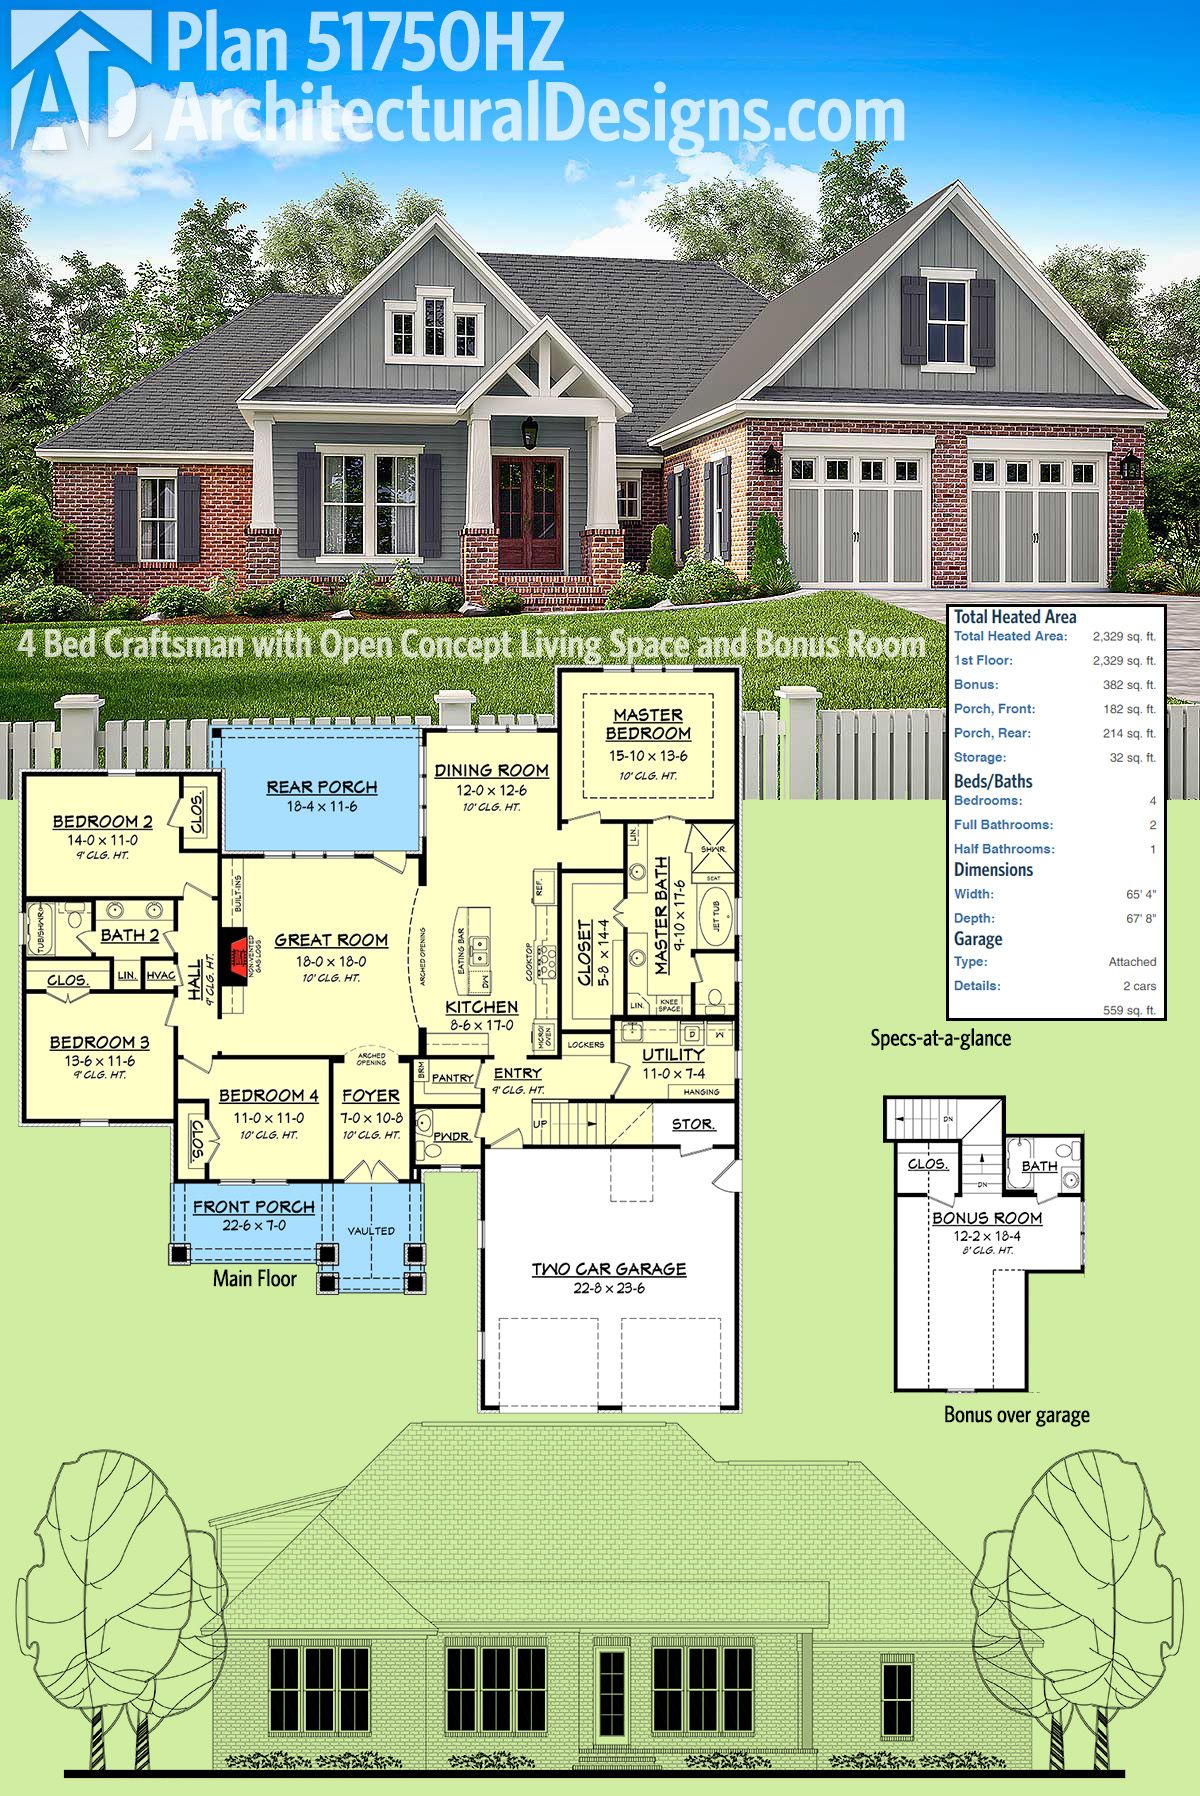 plan 51750hz 4 bed craftsman with open concept living